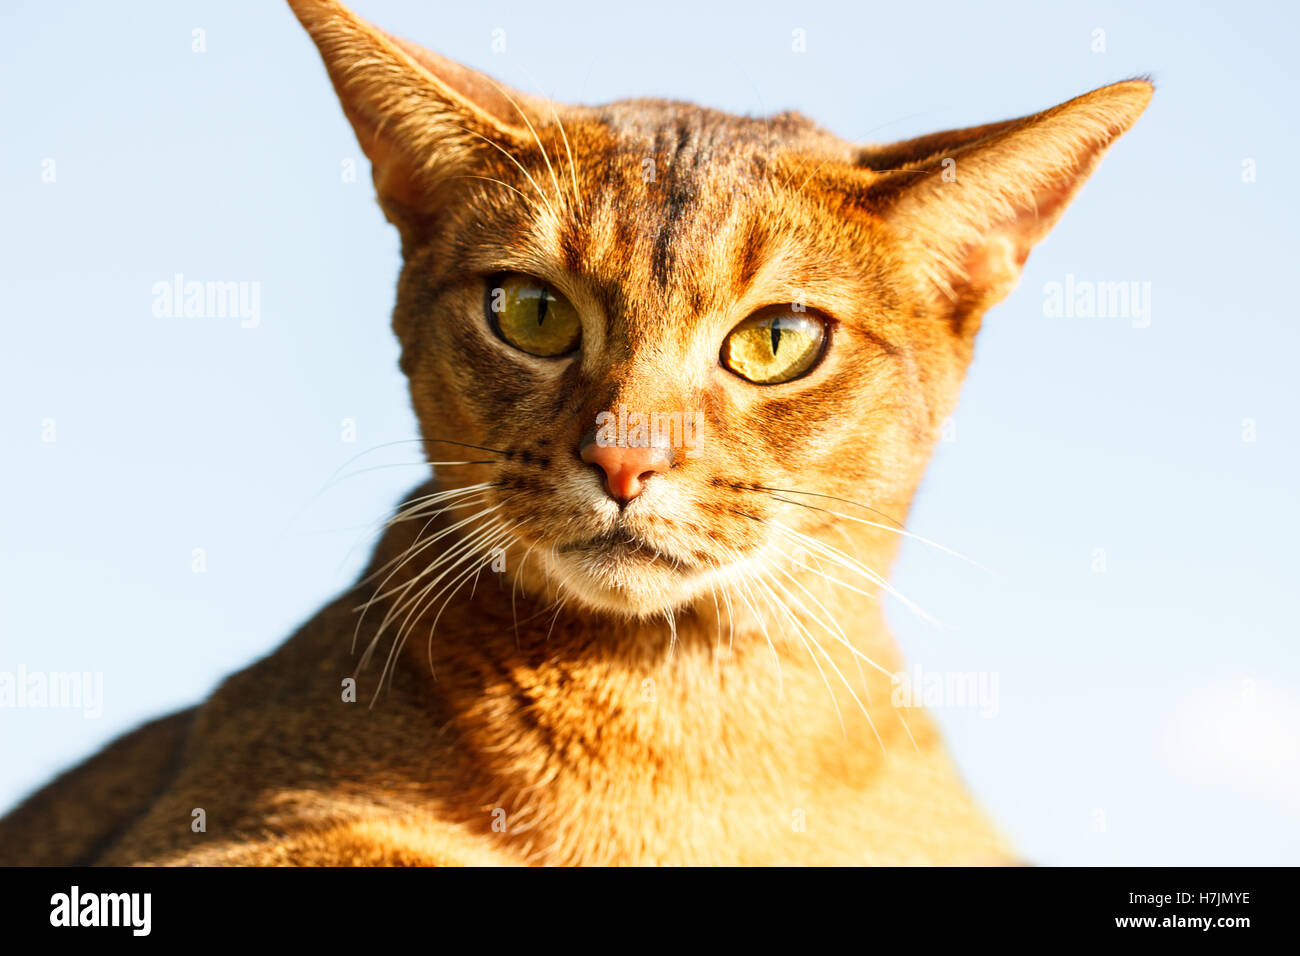 Abyssinian cat - Stock Image